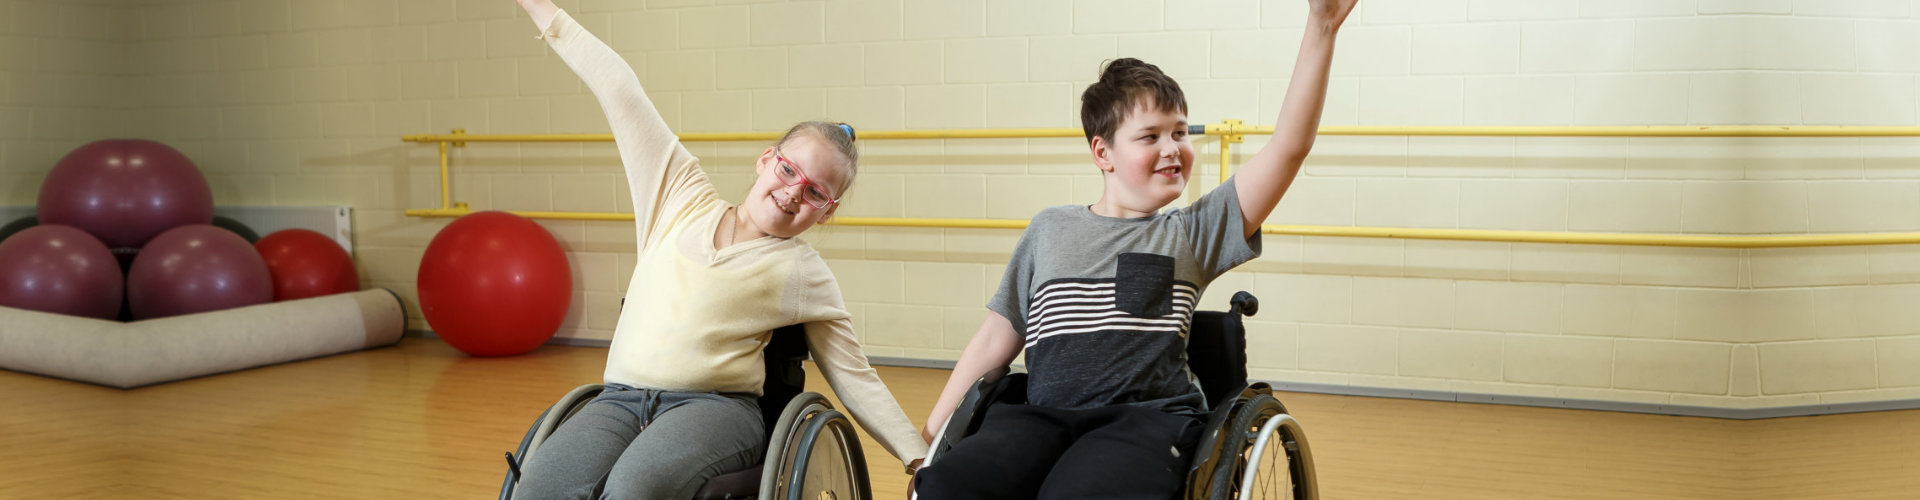 two kids on a wheelchair having fun